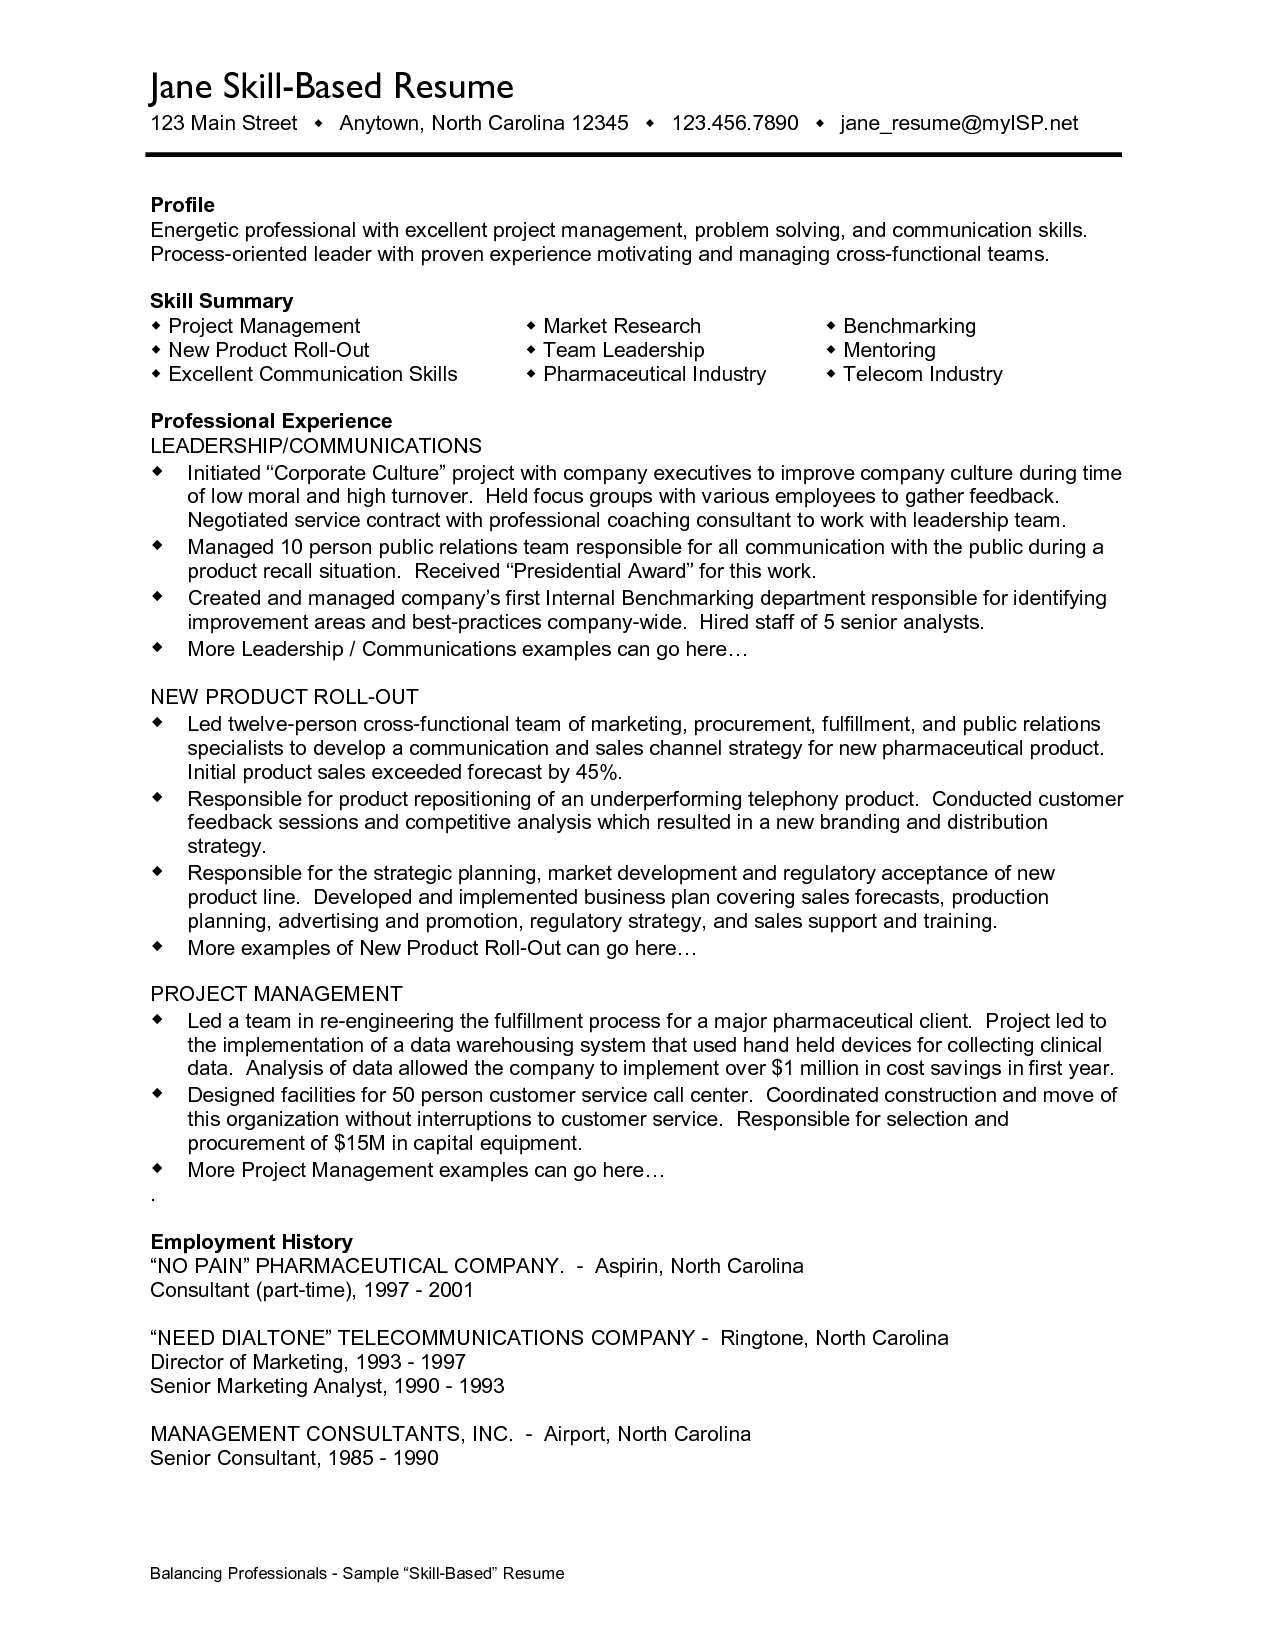 skill based resume examples | Professional Skills Sample Resume ...